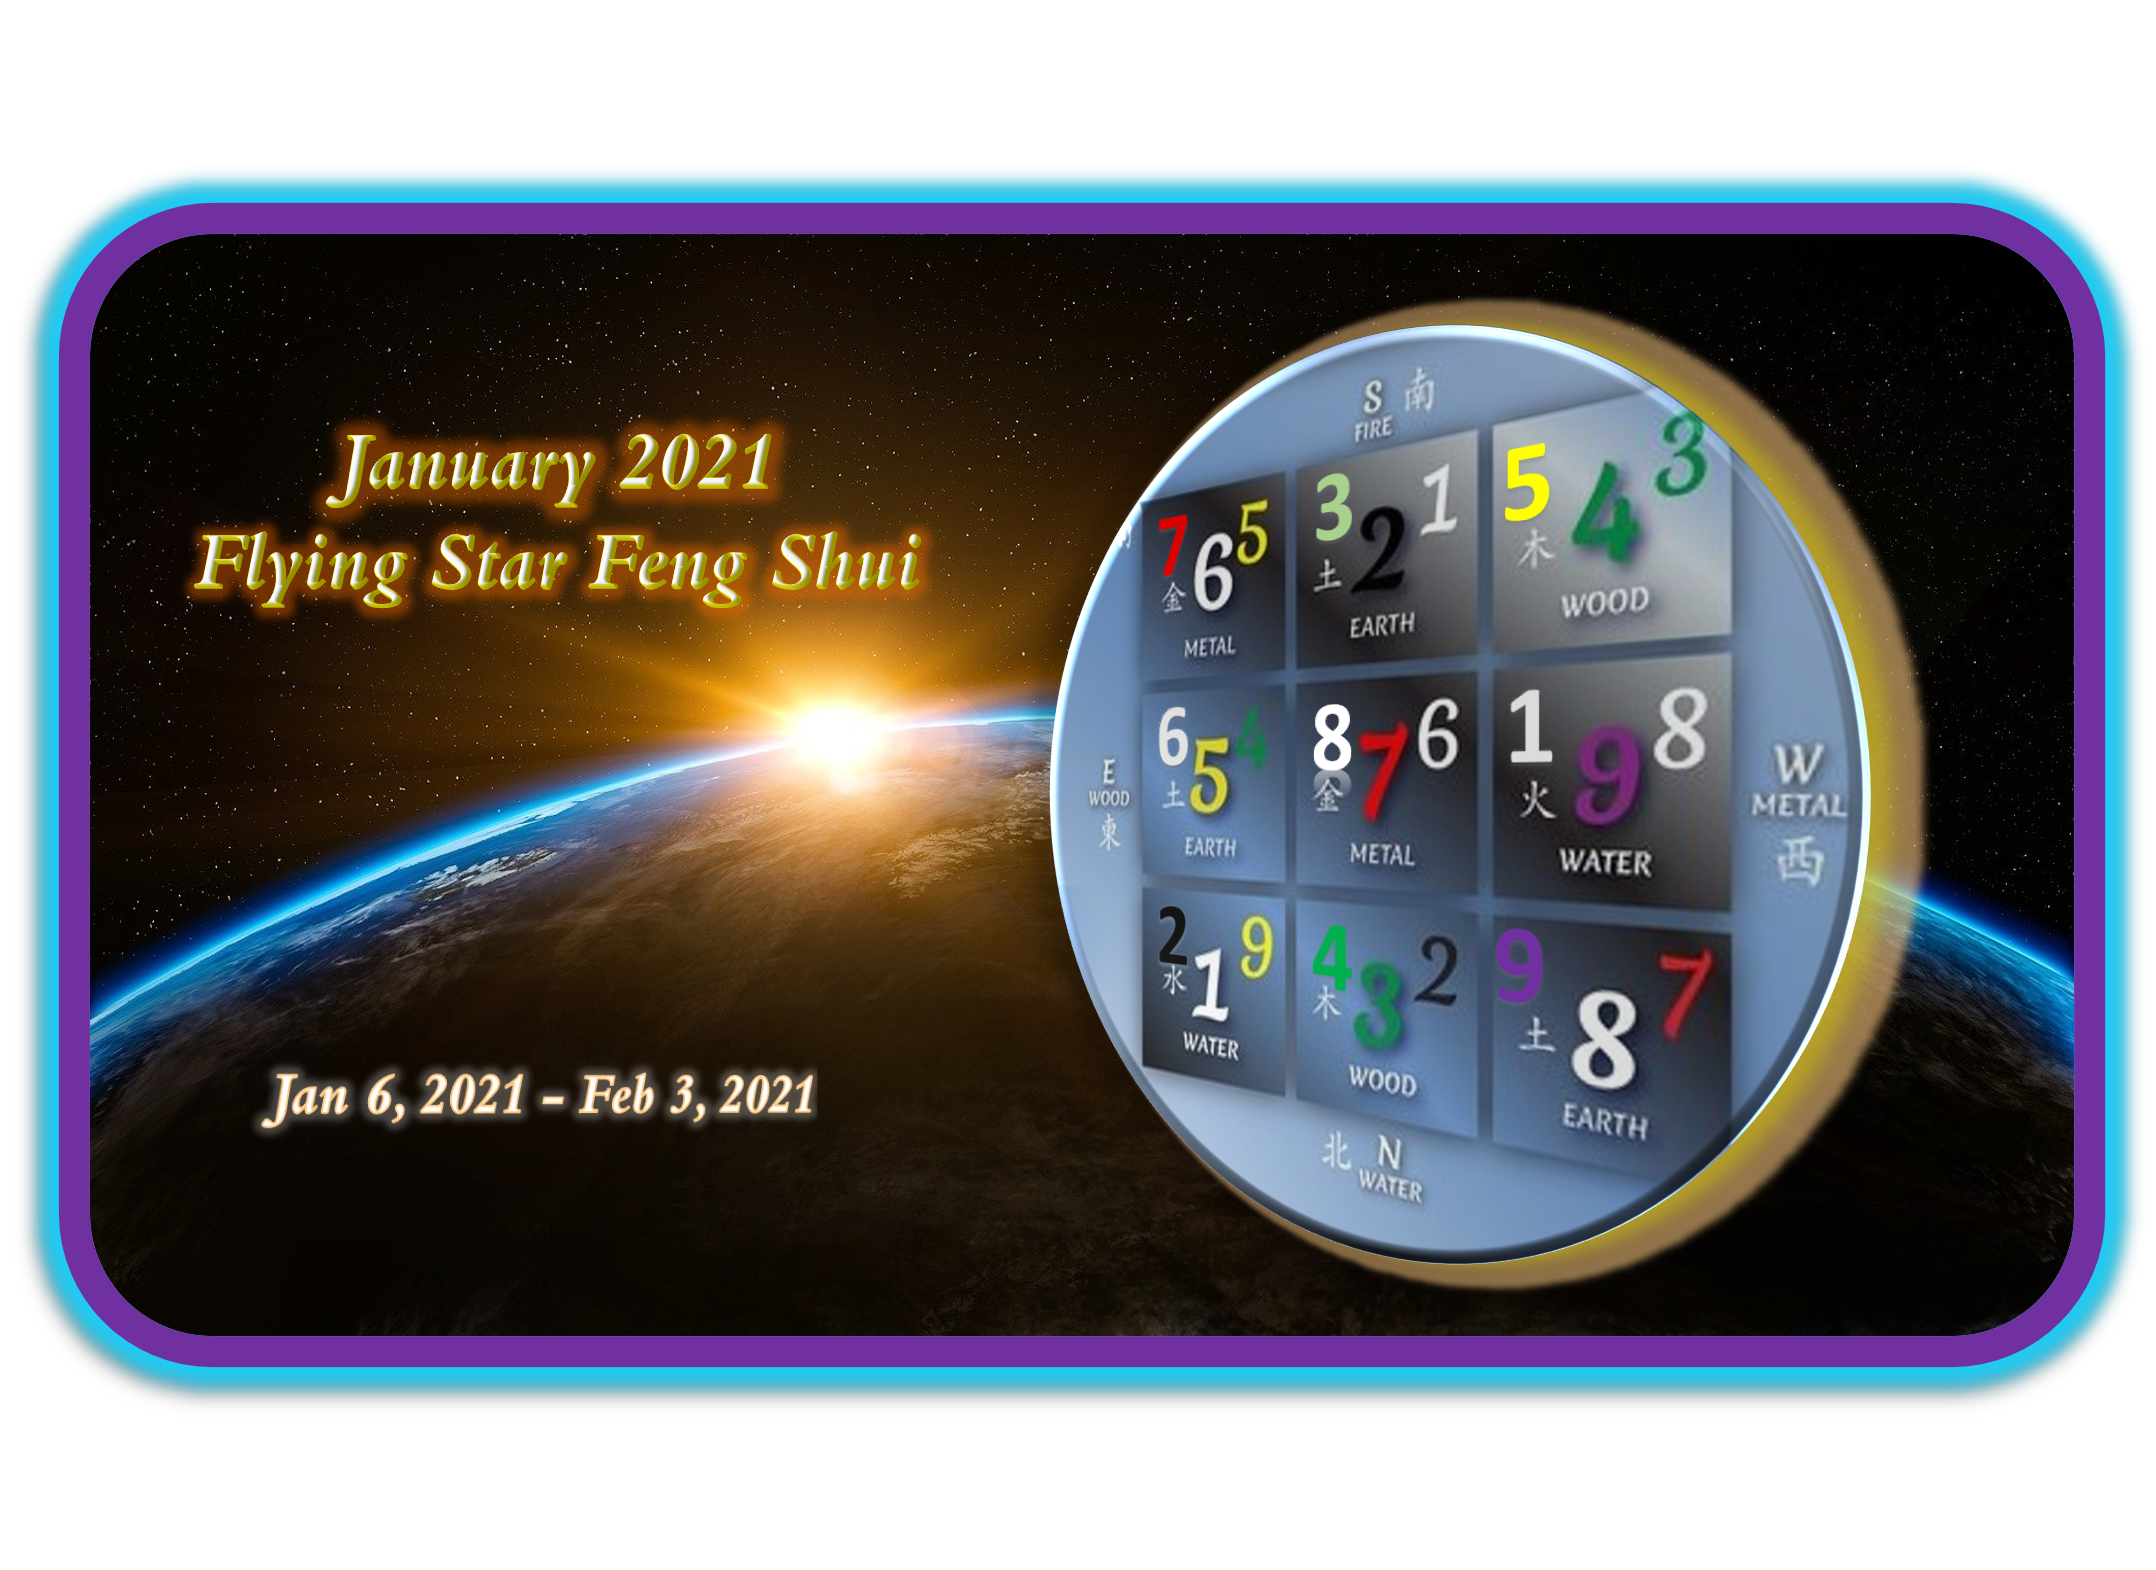 January 2021 Flying Star Feng Shui Chart